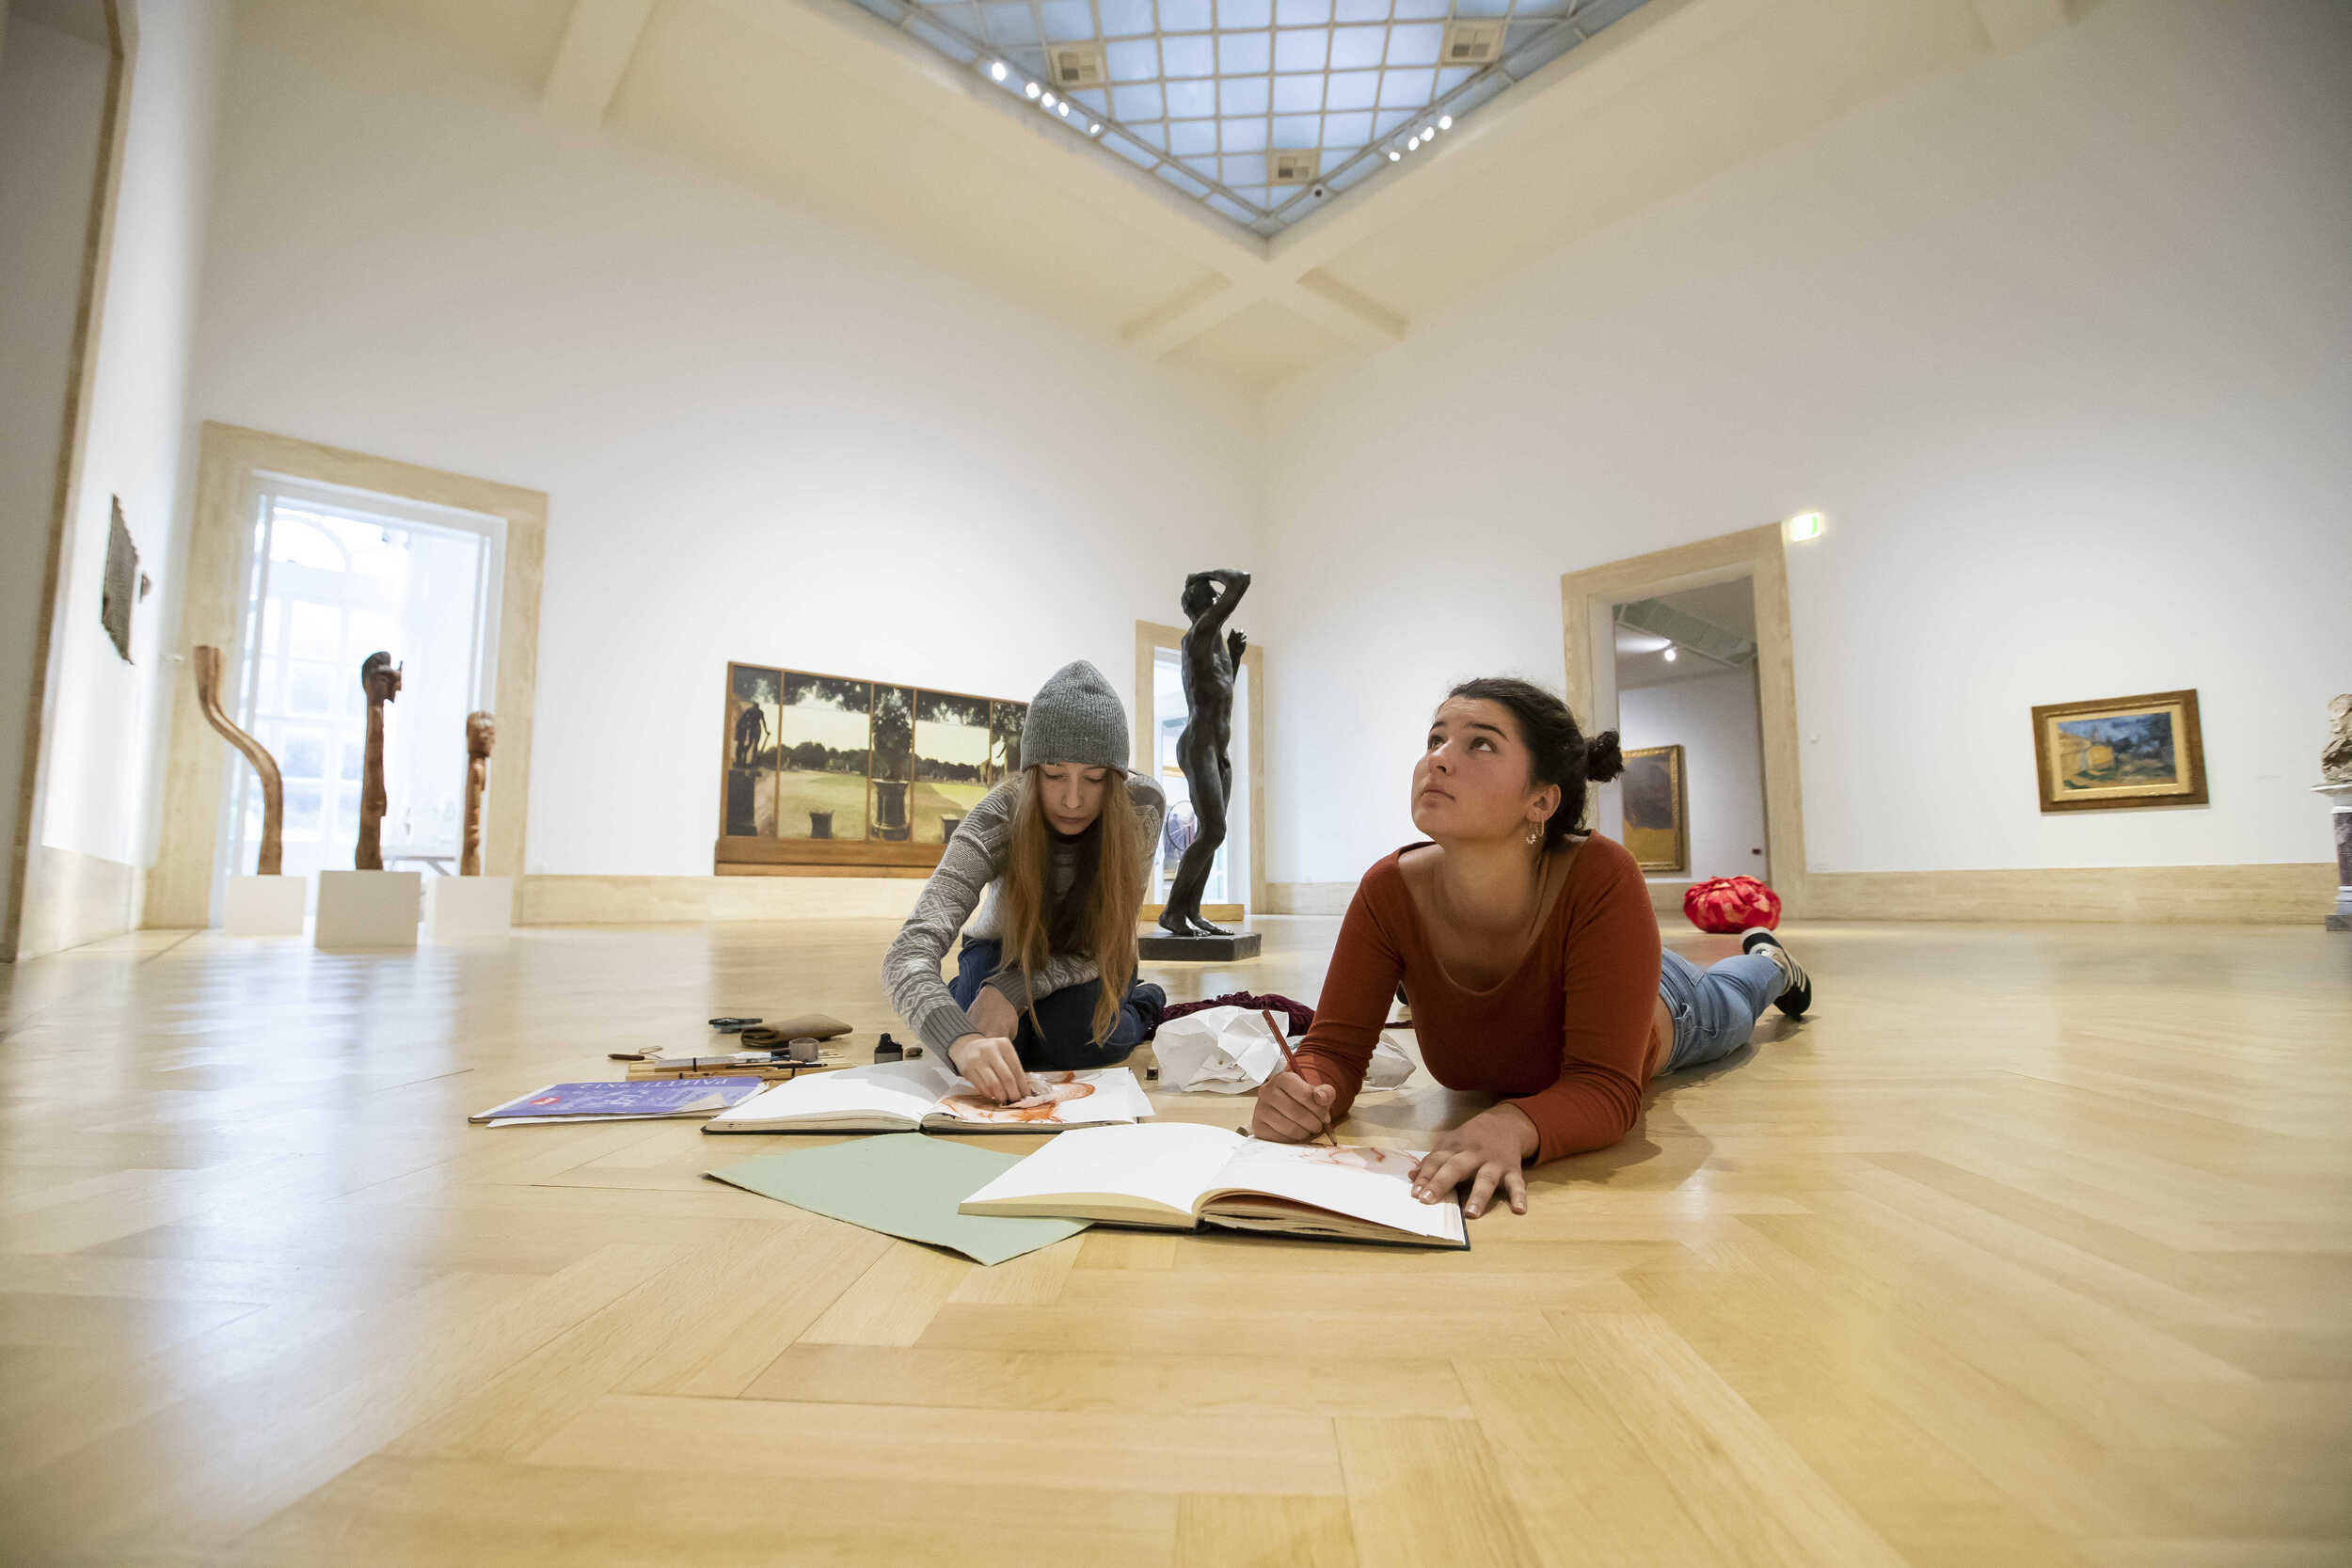 Two students laying on the floor of an art gallery in Rome, looking up at artwork.